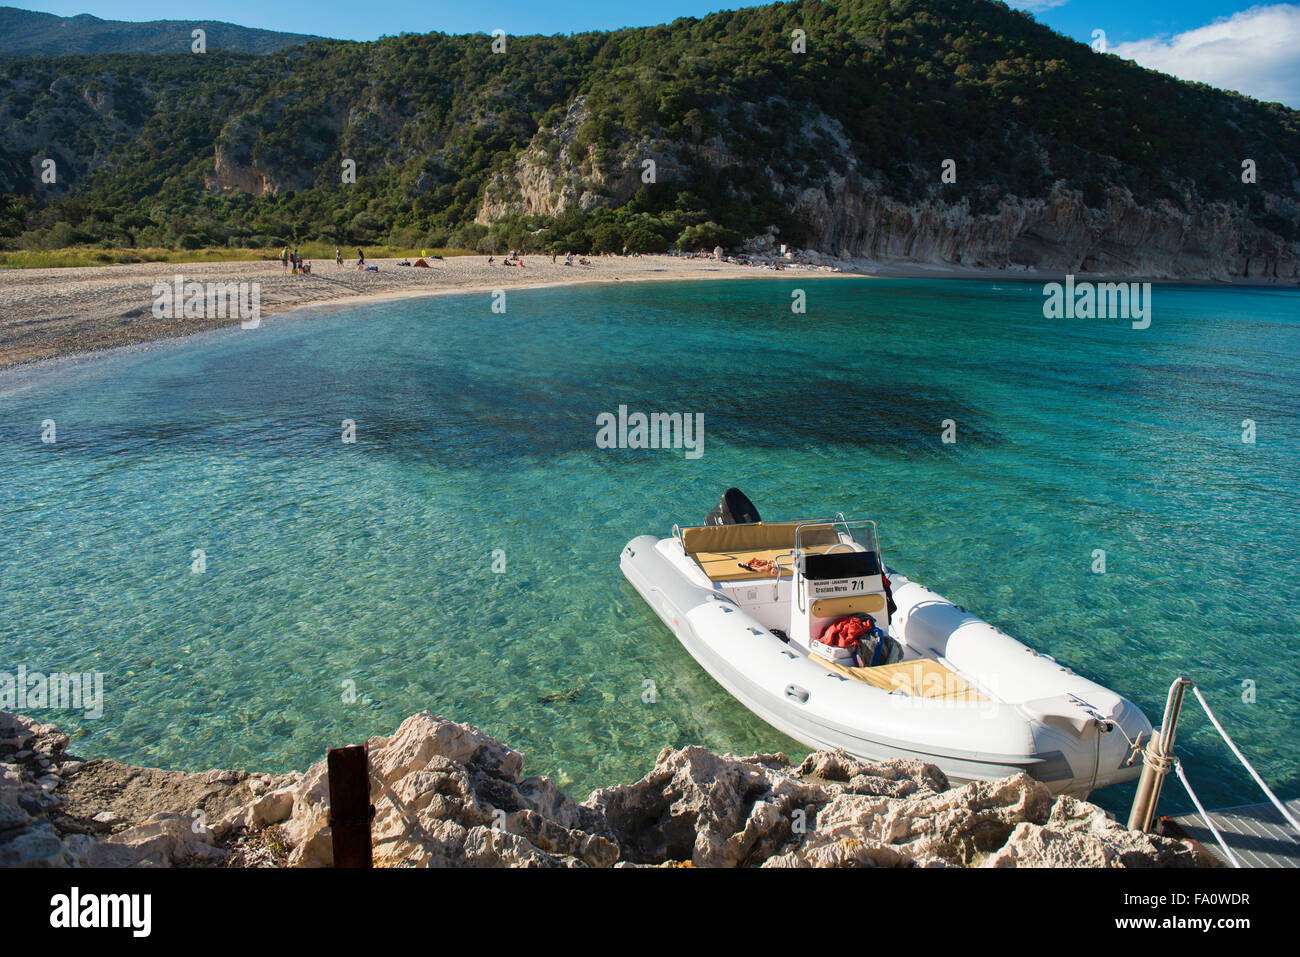 Cala Luna beach, Gulfo di Orosei, Sardinia Italy with boat in foreground - Stock Image